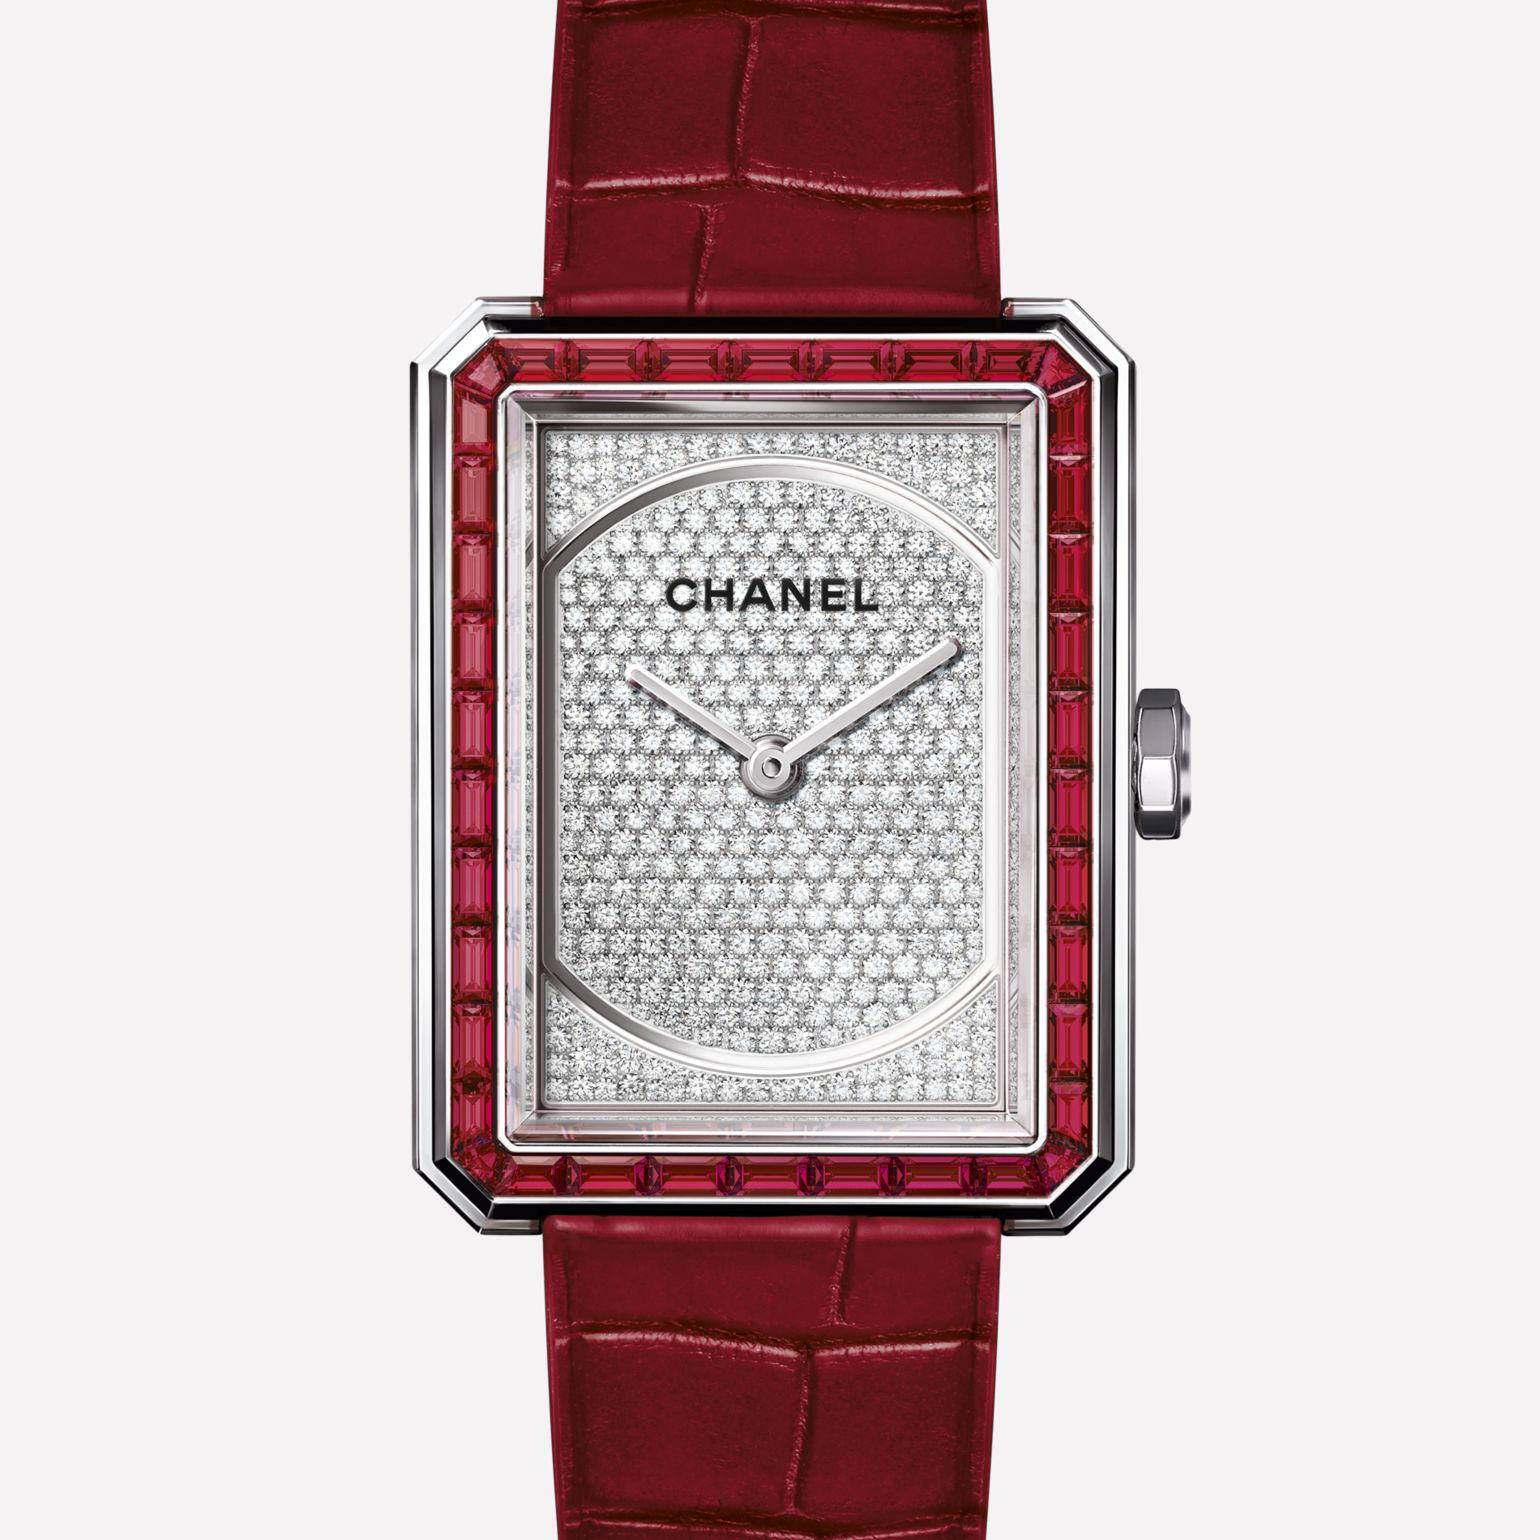 BOY·FRIEND RUBIES Watch Medium version, white gold set with rubies and alligator strap